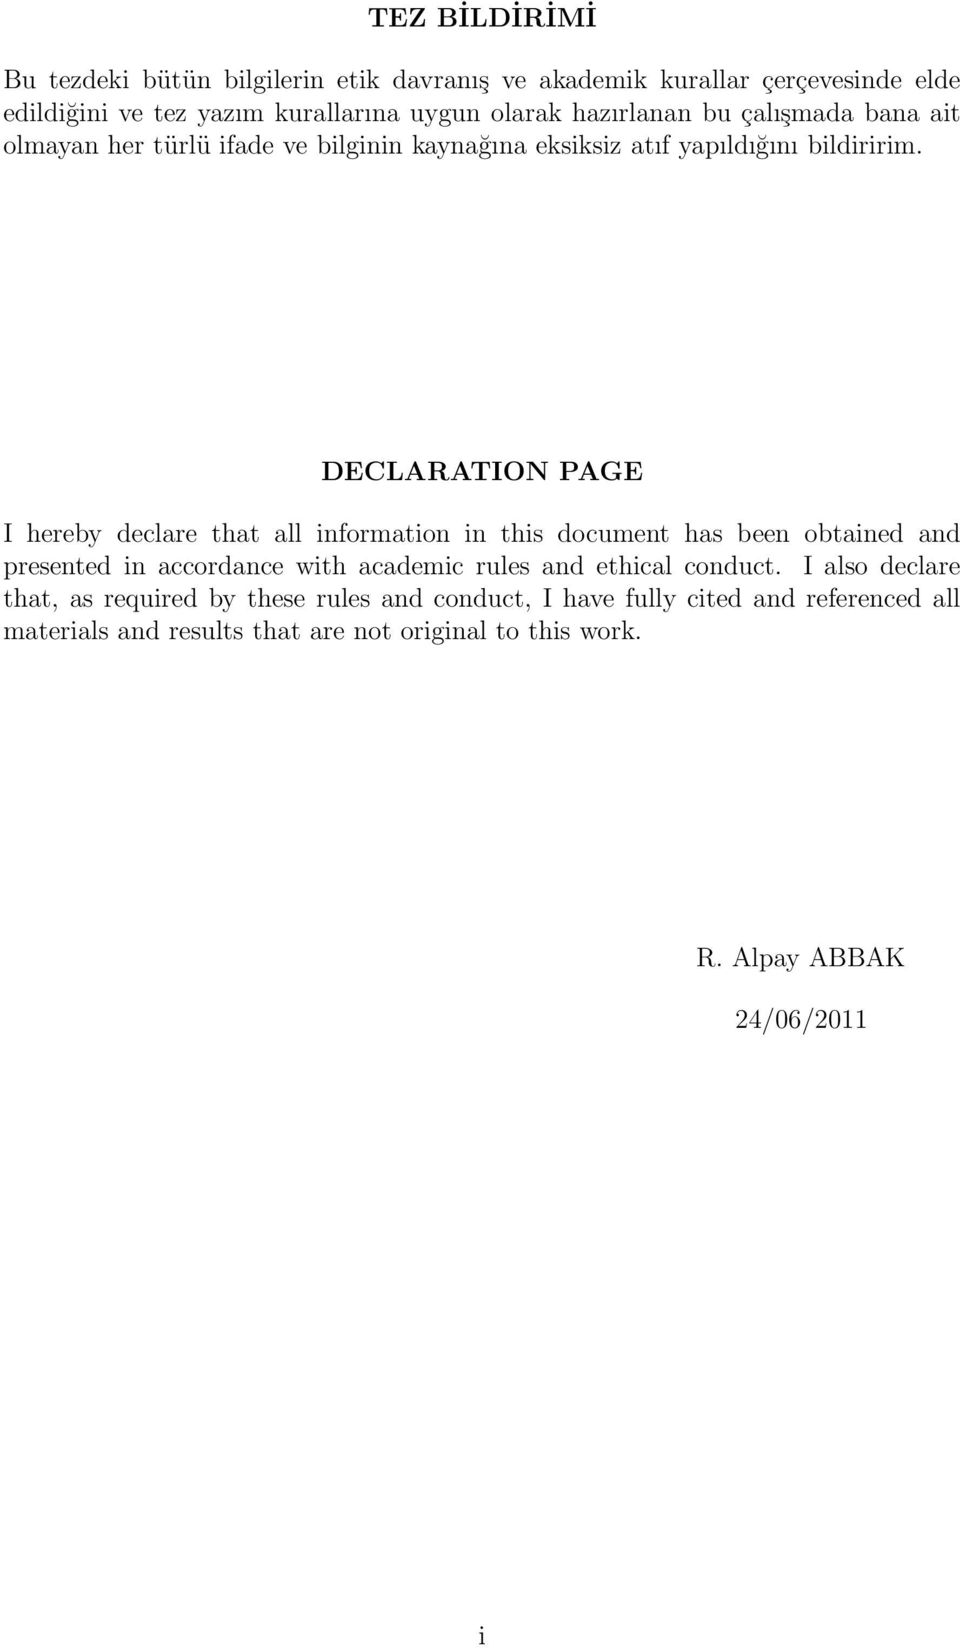 DECLARATION PAGE I hereby declare that all information in this document has been obtained and presented in accordance with academic rules and ethical